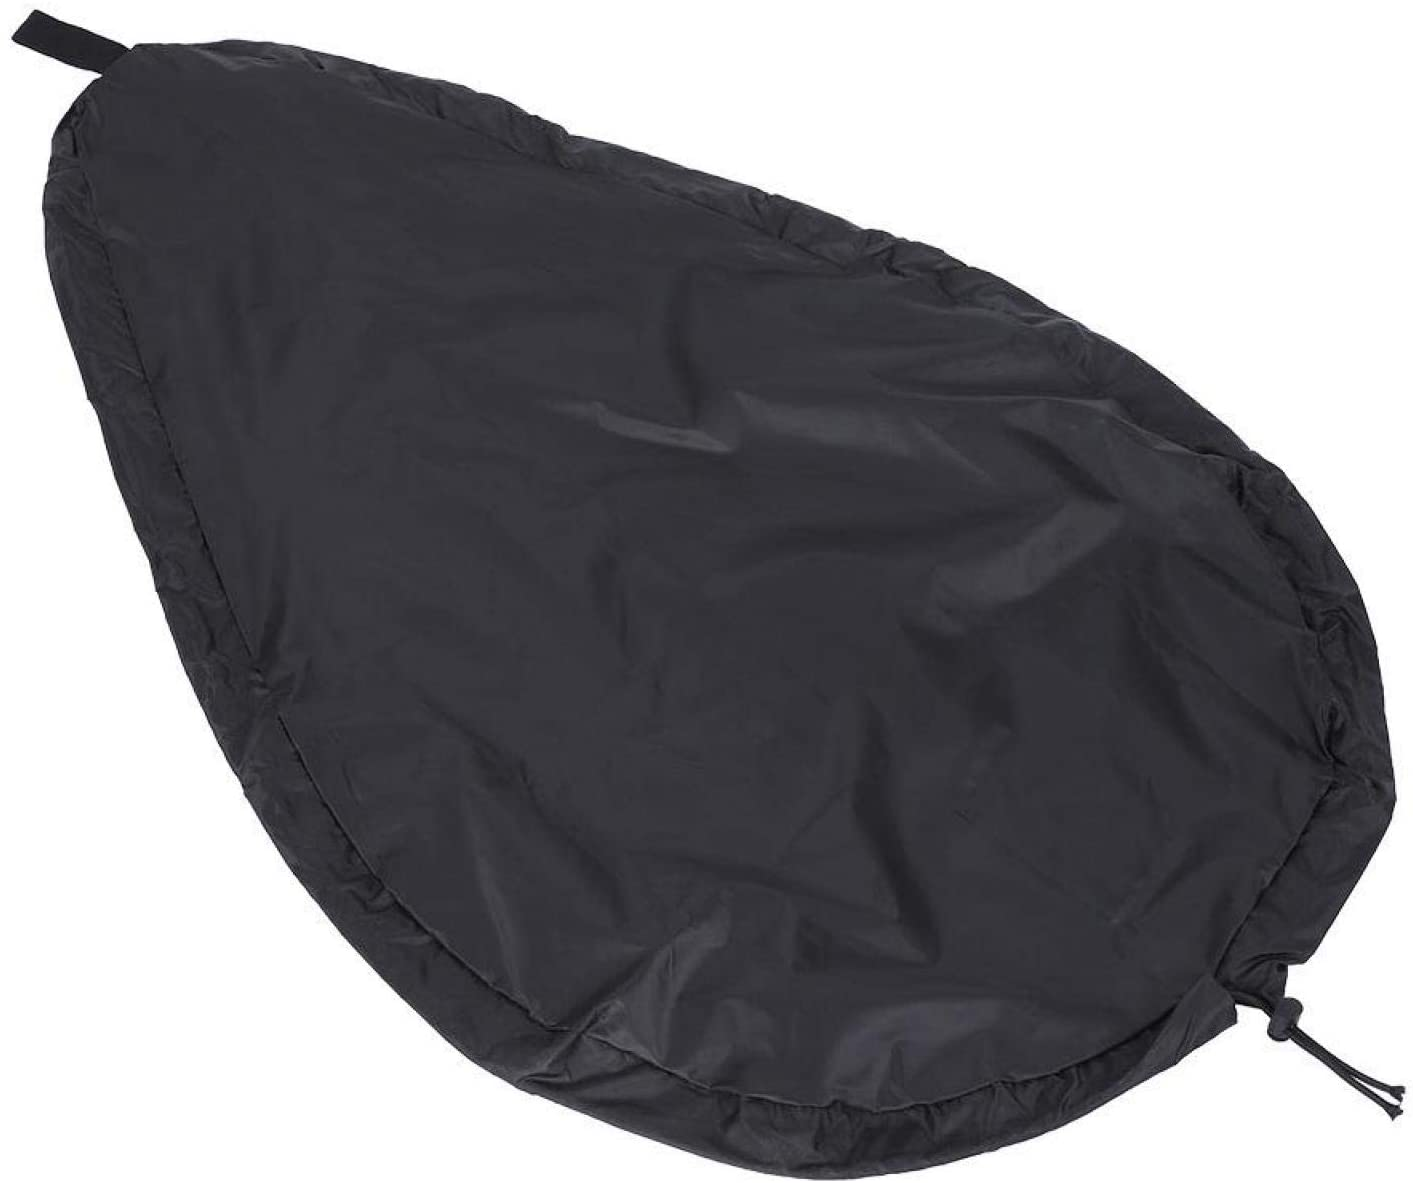 VGEBY Black Kayak Canopy Universal Blocking Canoe Fit Coc Inexpensive Max 75% OFF